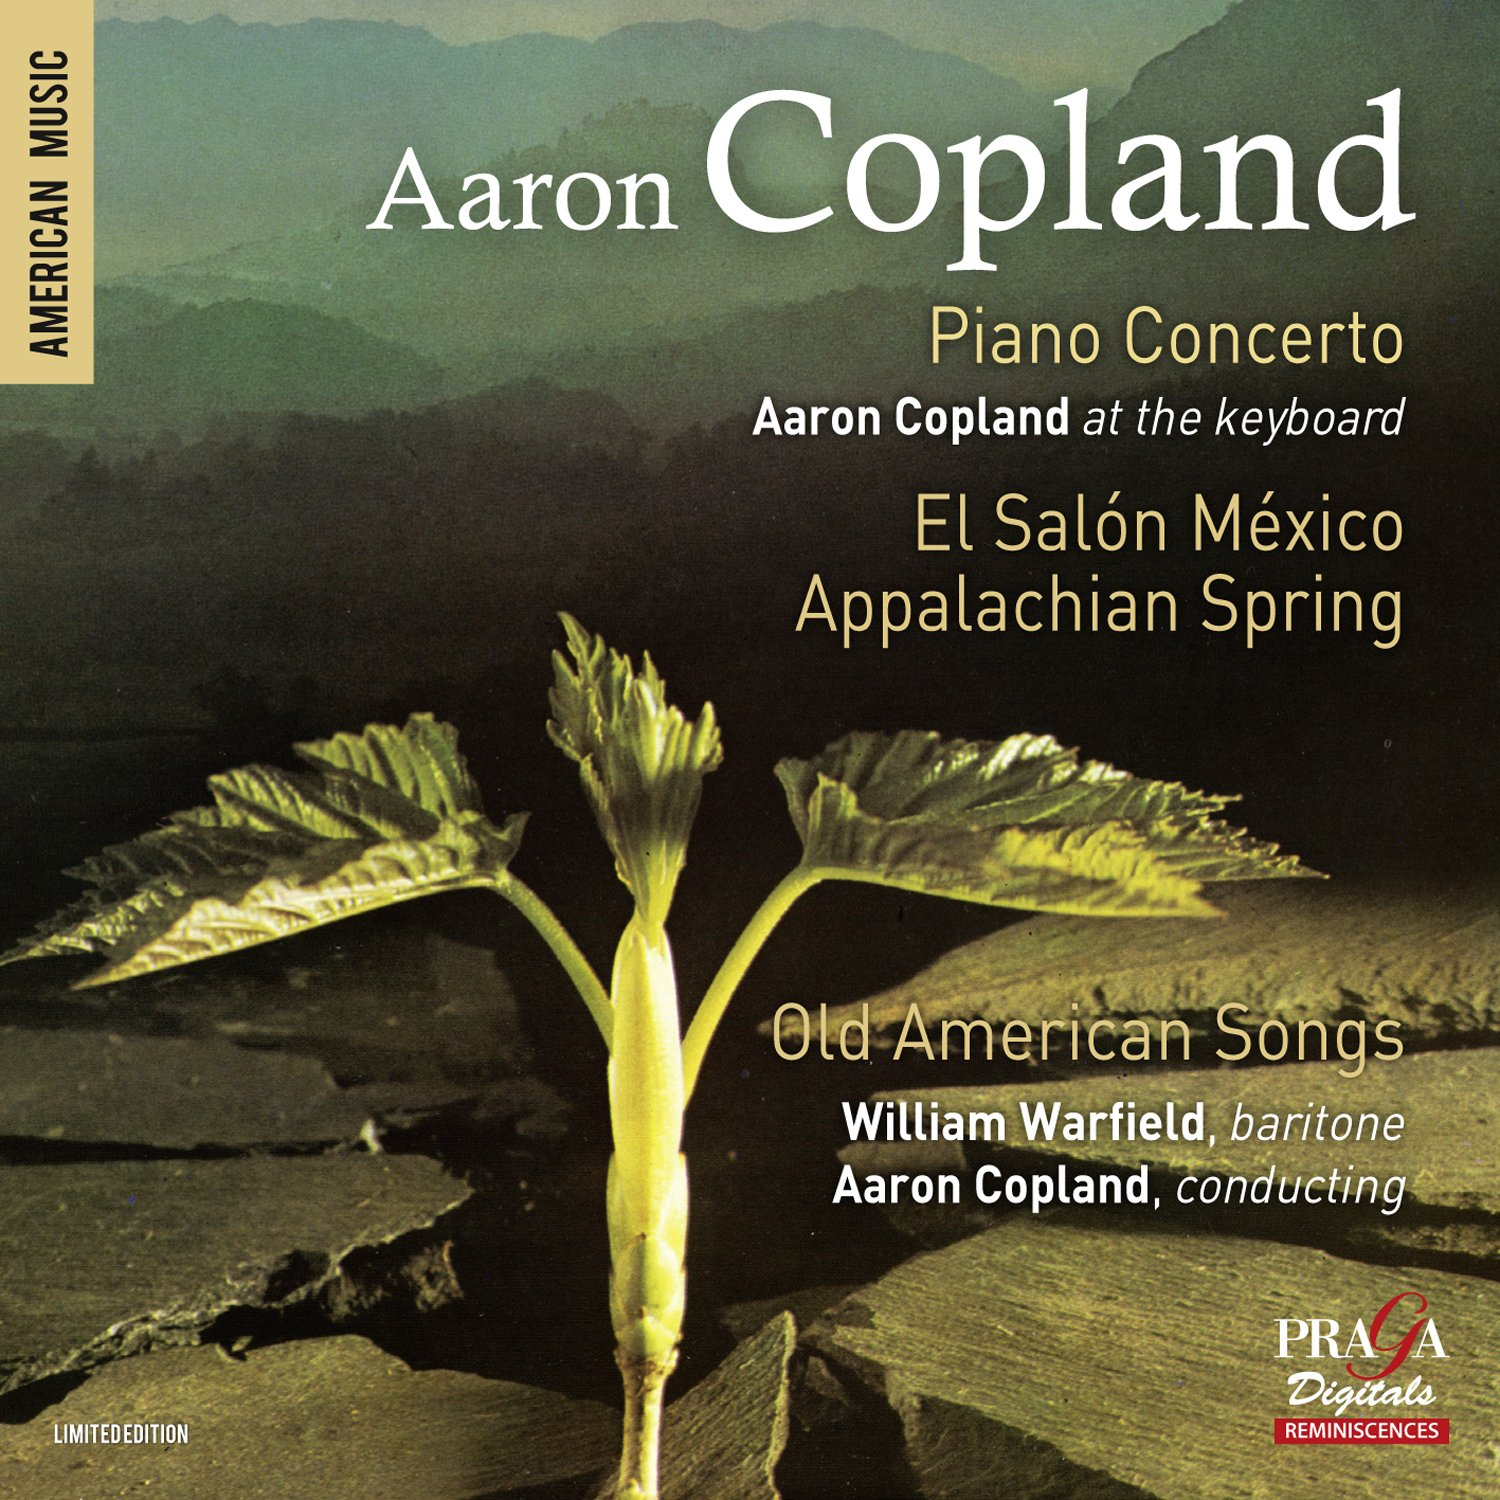 Copland: Piano Concerto, Appalachian Spring, Old American Songs by PRAGA